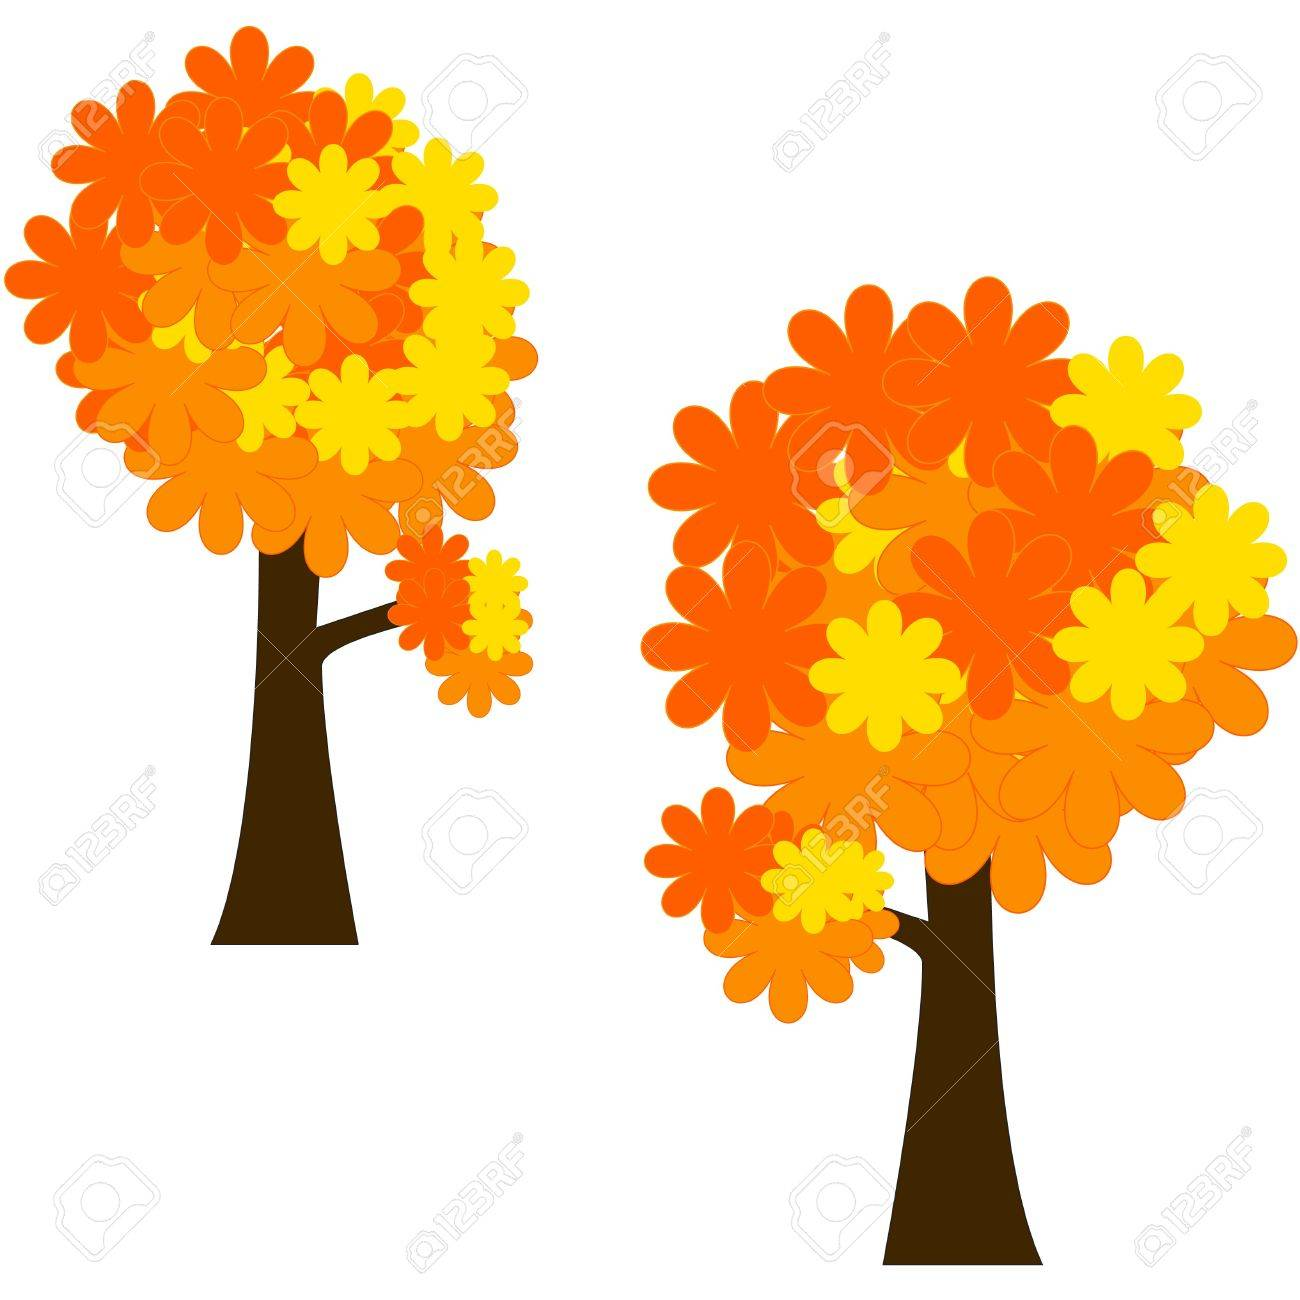 Autumn Tree With Stylised Leaves - Clip Art Royalty Free Cliparts ...